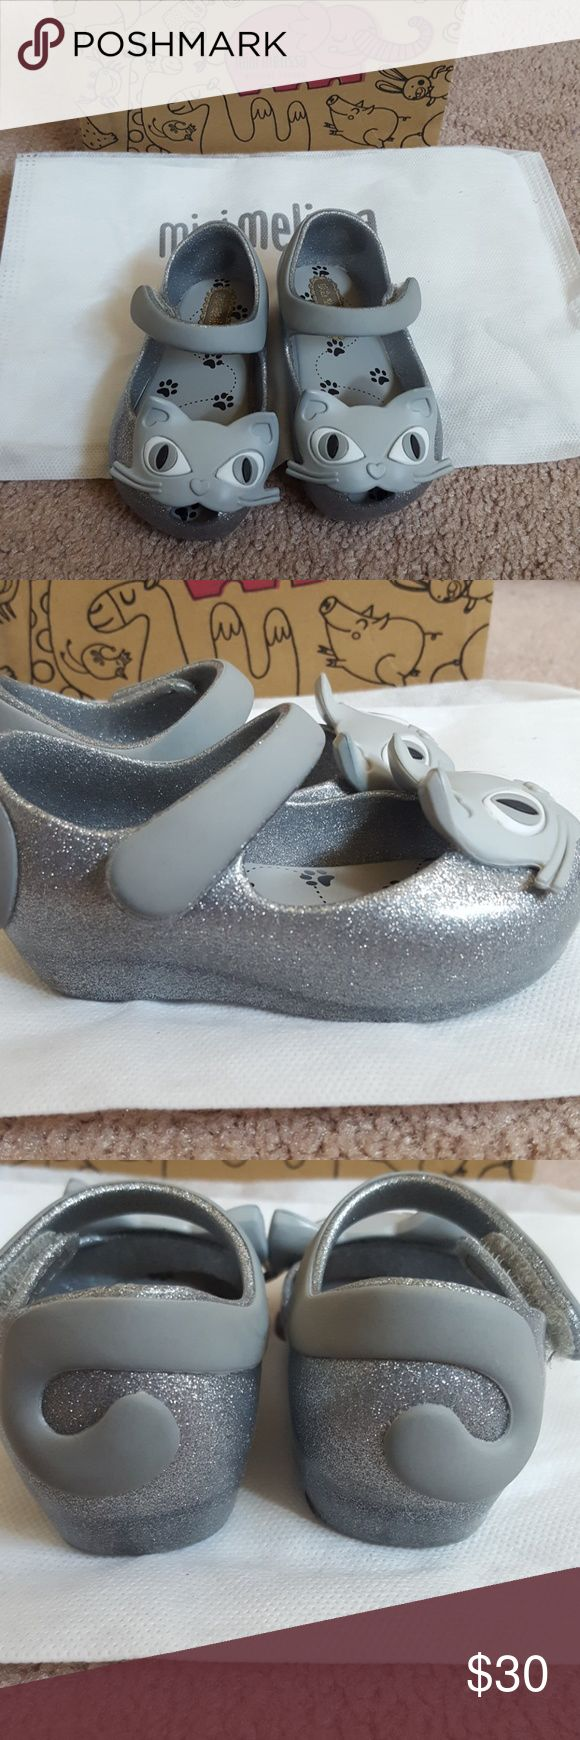 Authentic Mini Melissa Ultragirl II Cat shoes Authentic silver glitter Mini Melissa shoes. In great condition! Box and dust bag are included. These are toddler size 5, but run more like a 4.5. Mini Melissa Shoes